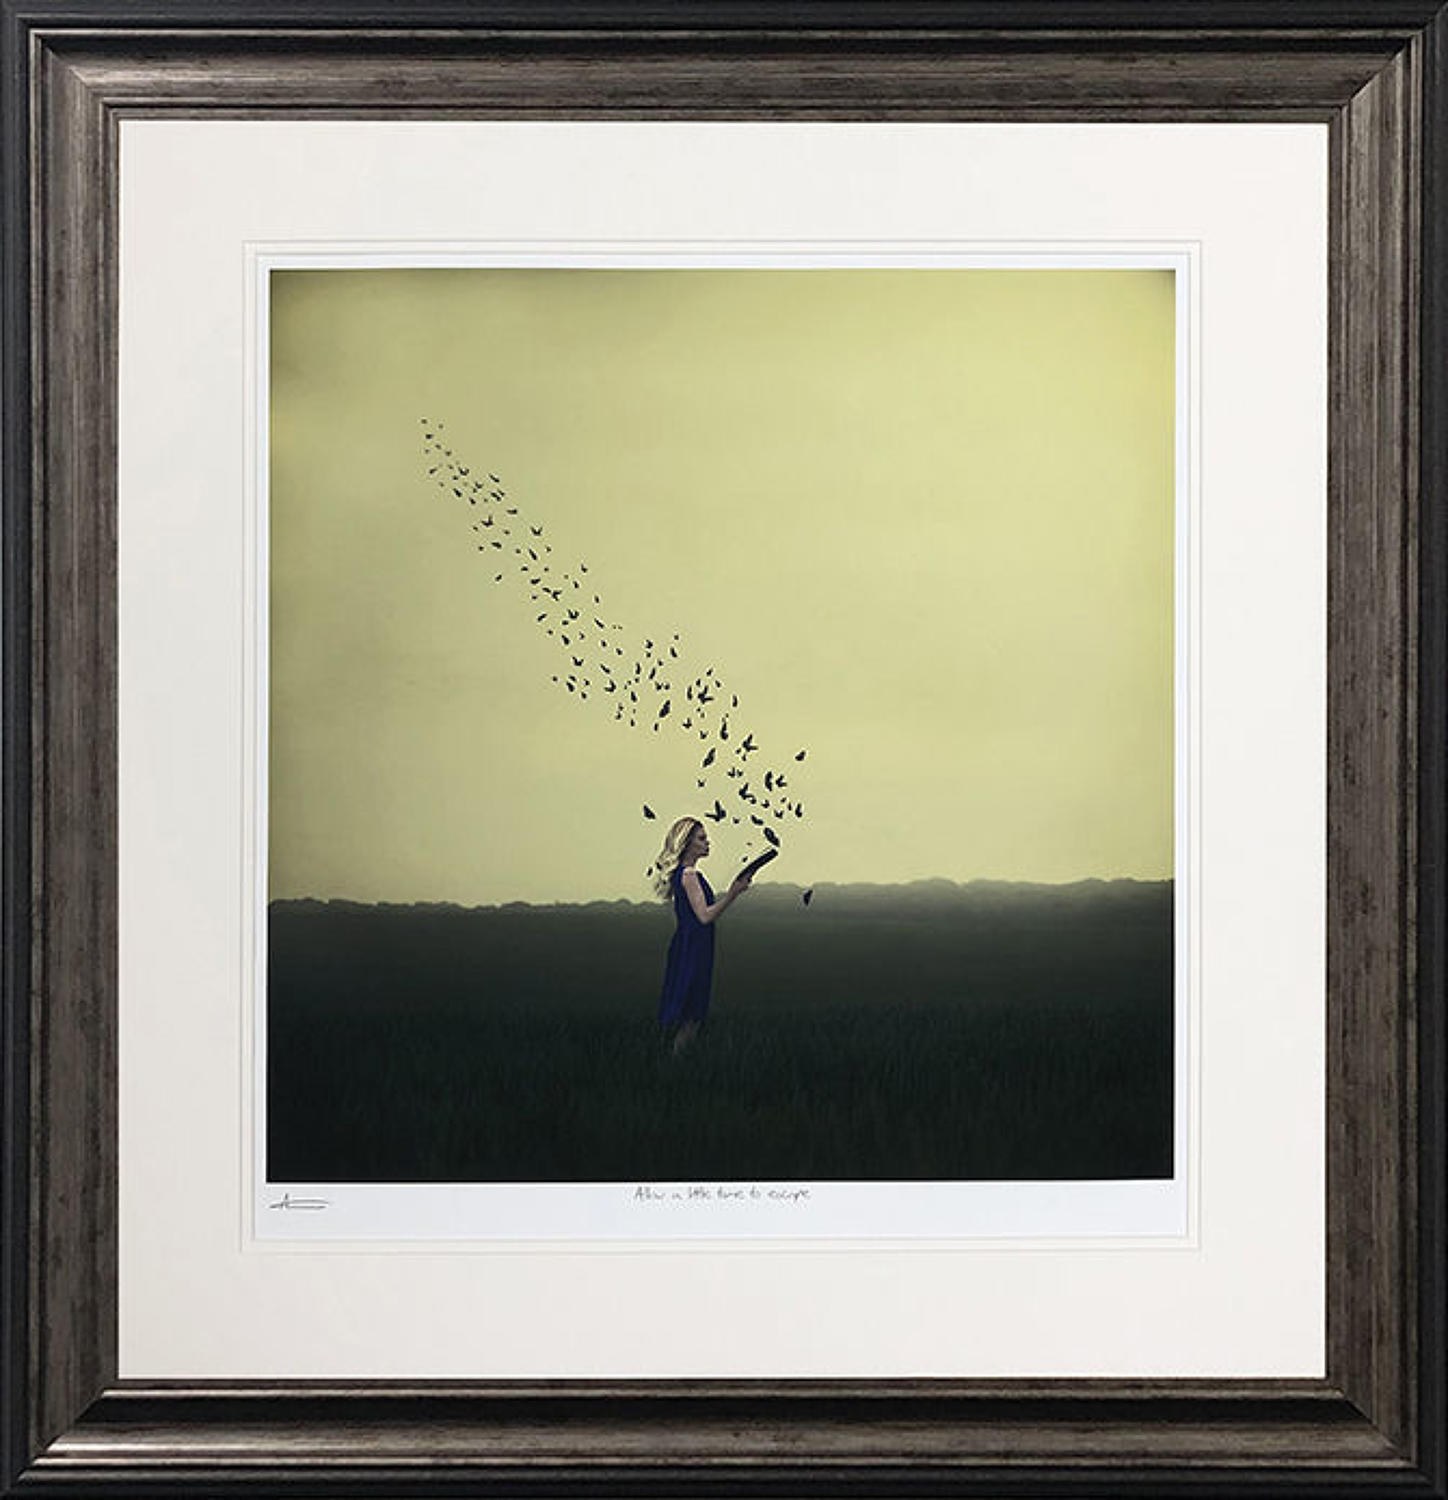 Allow a Little Time to Escape Michelle Mackie Framed Art Print